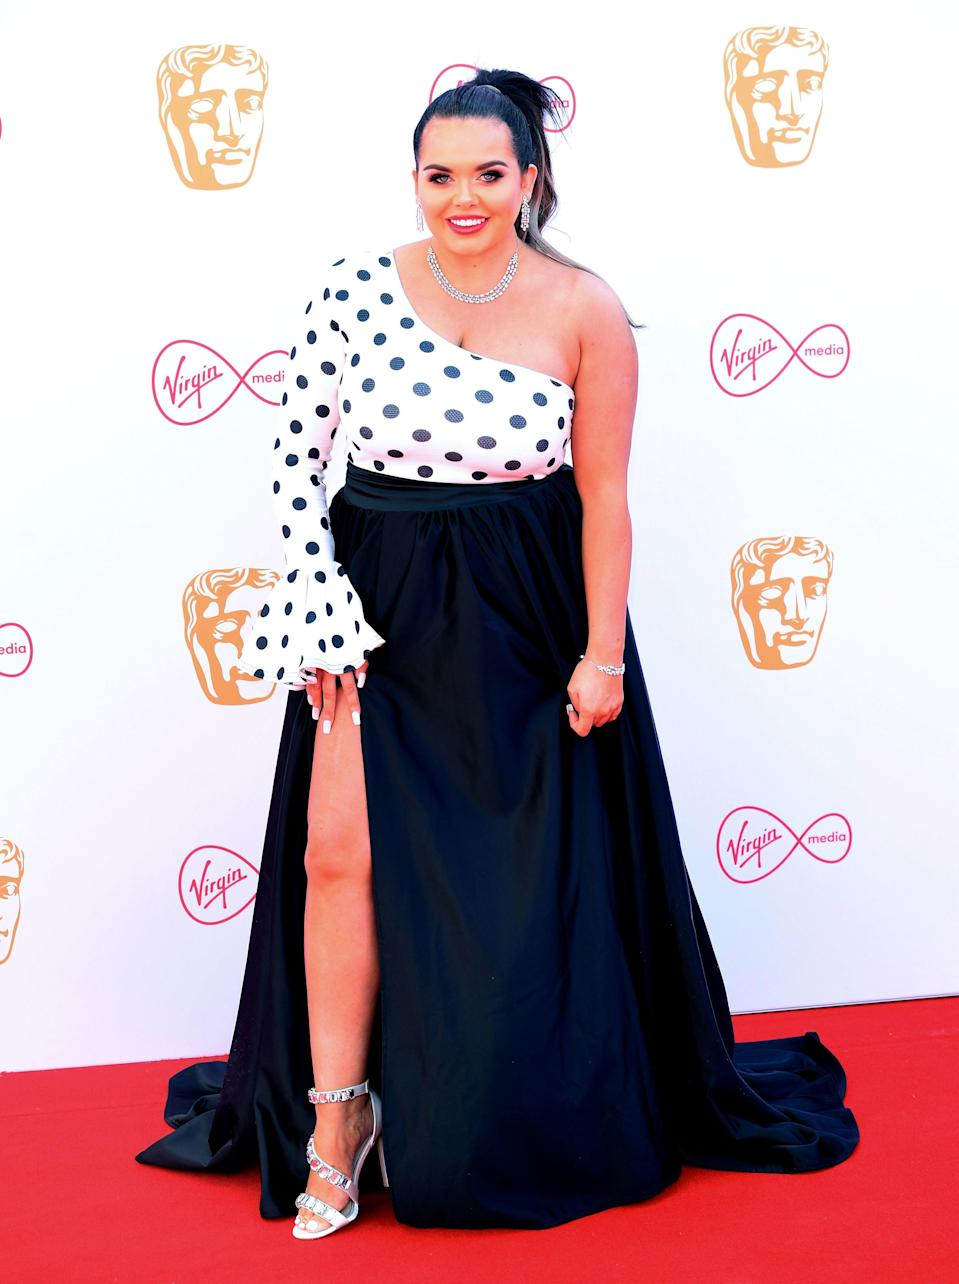 Moffatt on the red carpet for the BAFTA TV awards, held at the Royal Festival Hall in London in 2019 (PA)